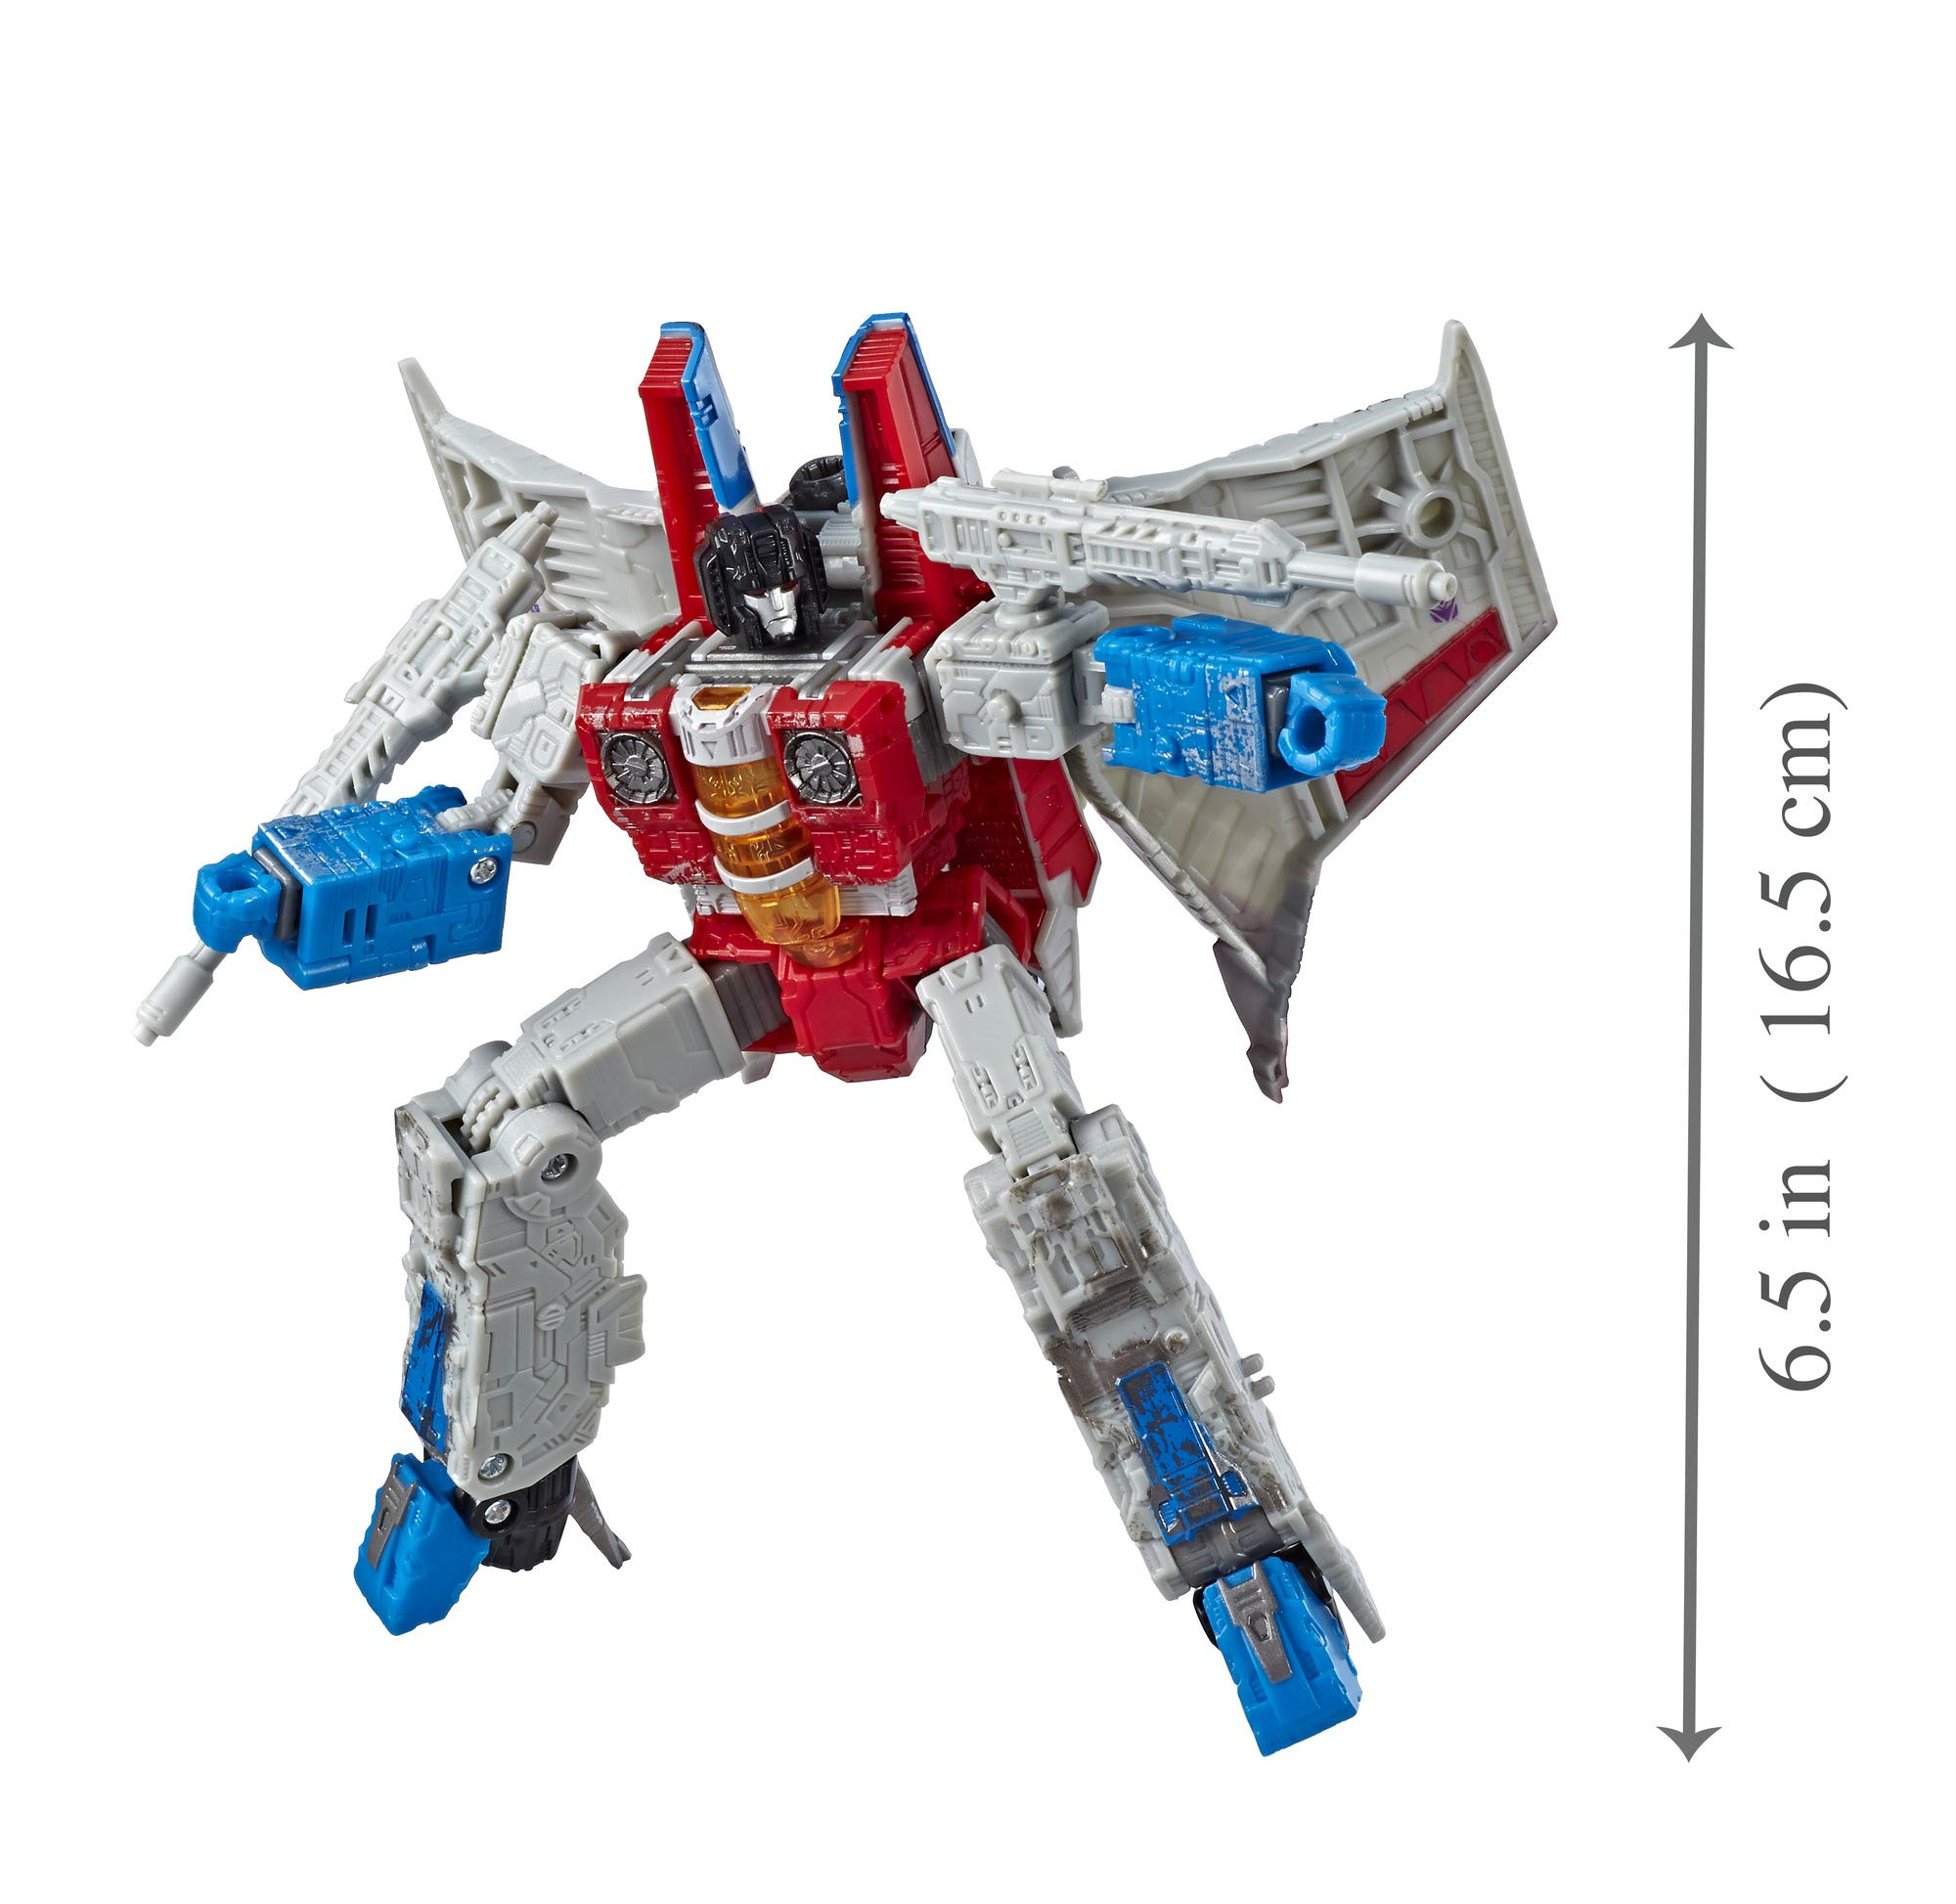 Transformers Toys Generations War for Cybertron Voyager Wfc-S24 Starscream Action Figure - Siege Chapter - Adults & Kids Ages 8 & Up, 7'' by Transformers (Image #8)